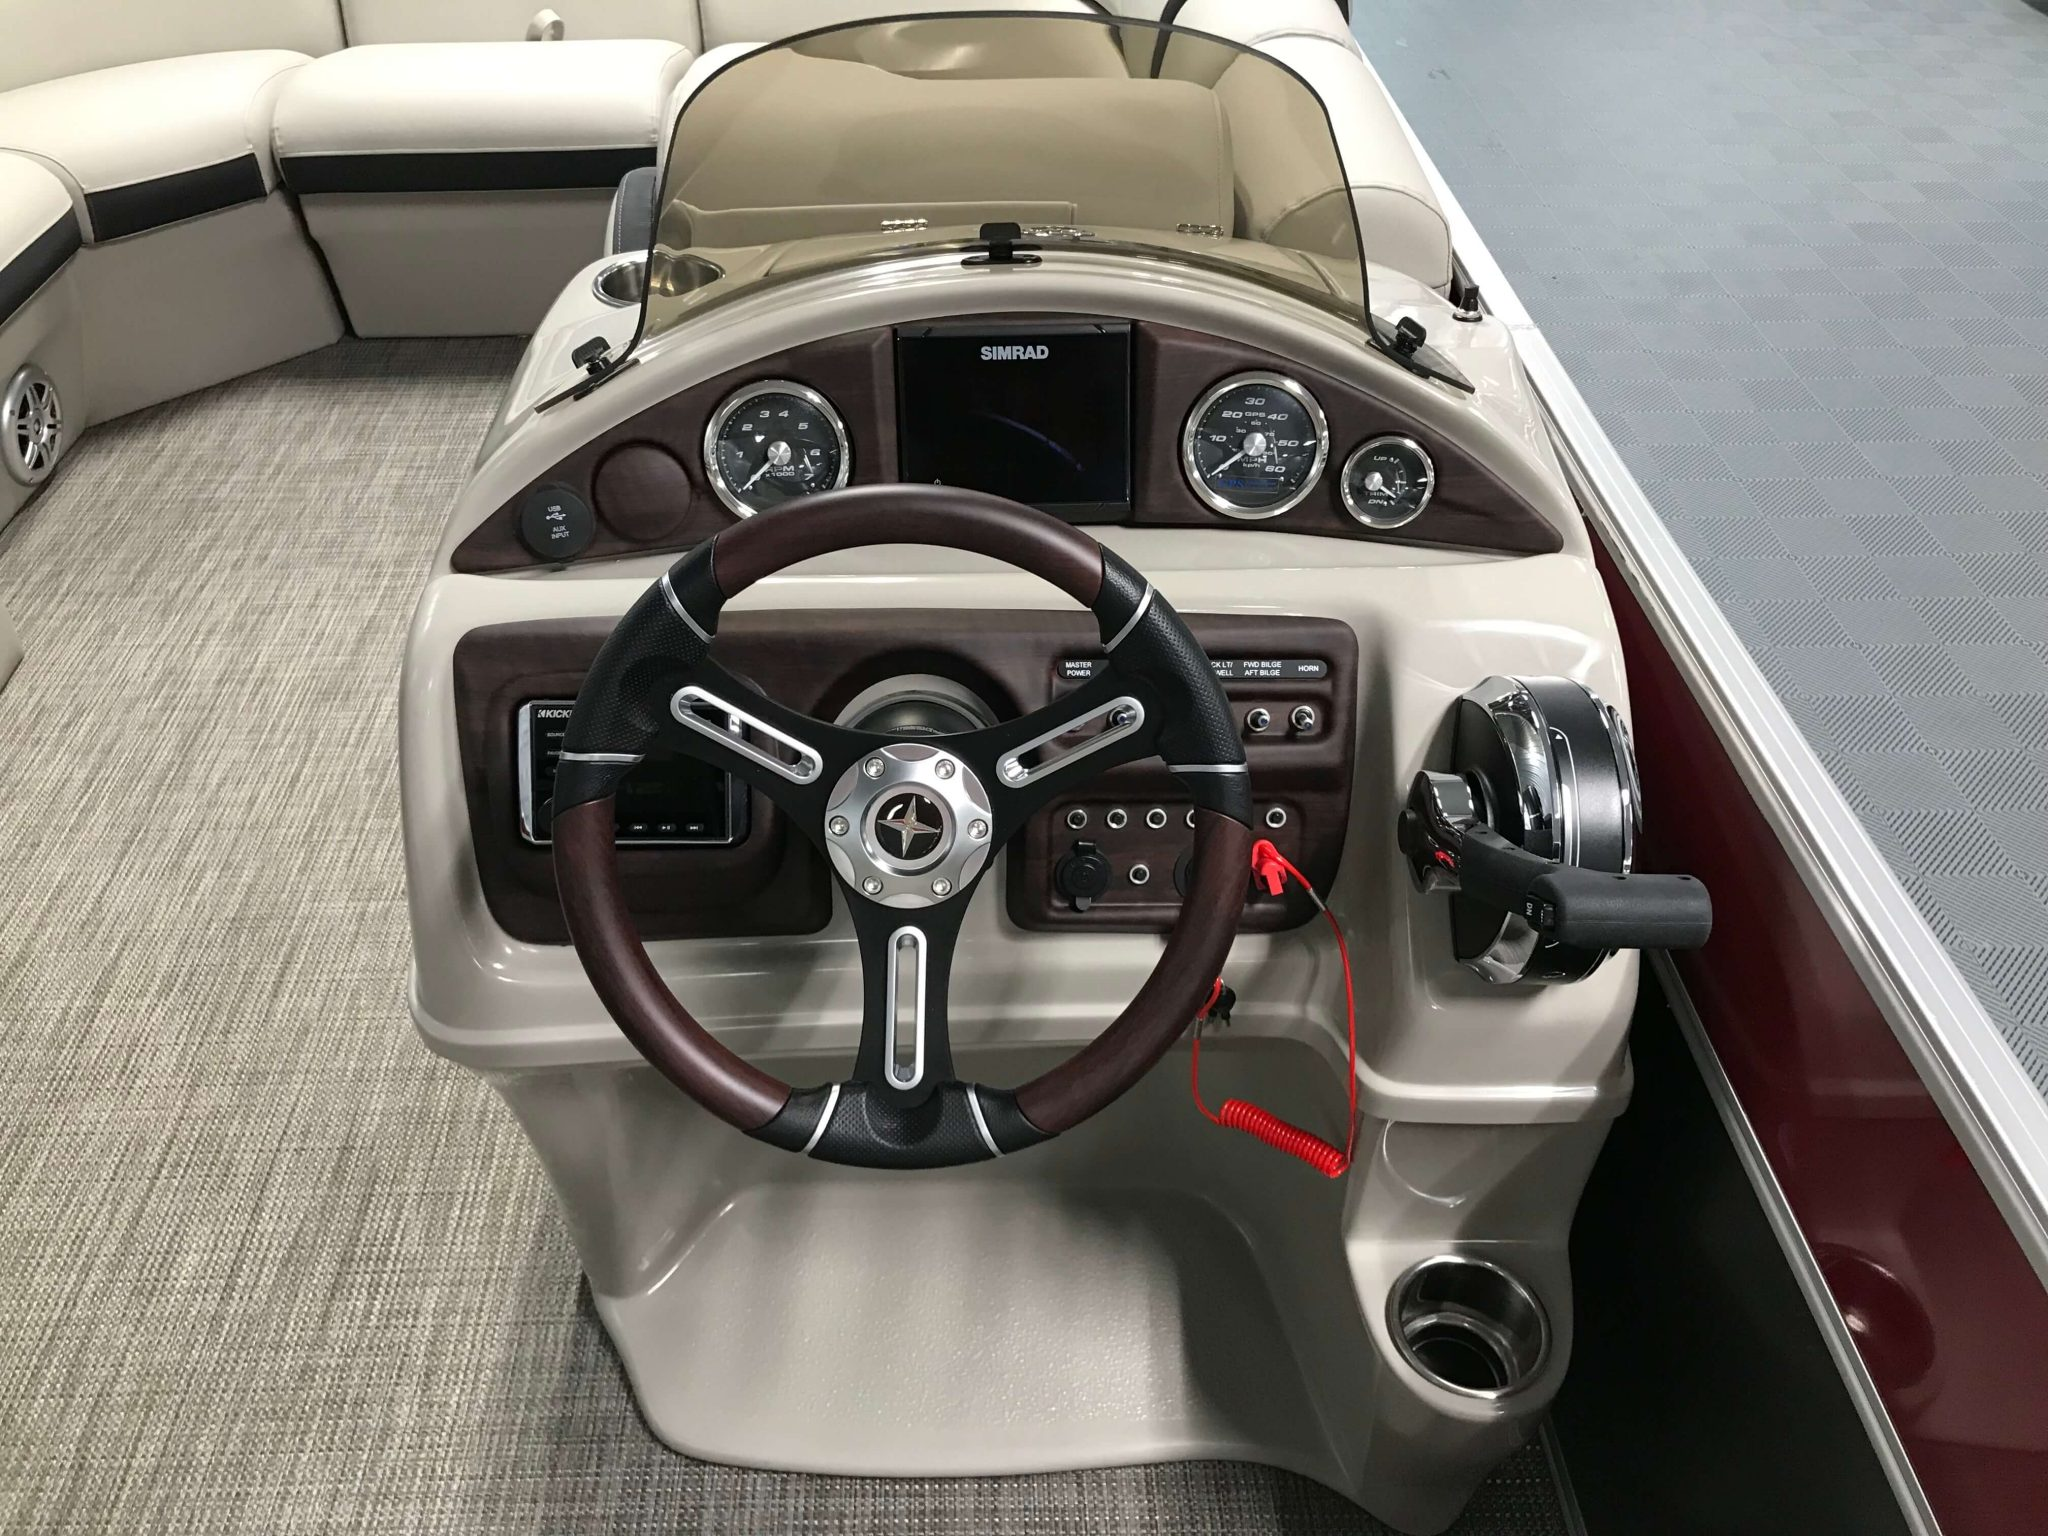 2019 Berkshire 23RFX STS Deluxe Helm And Dash